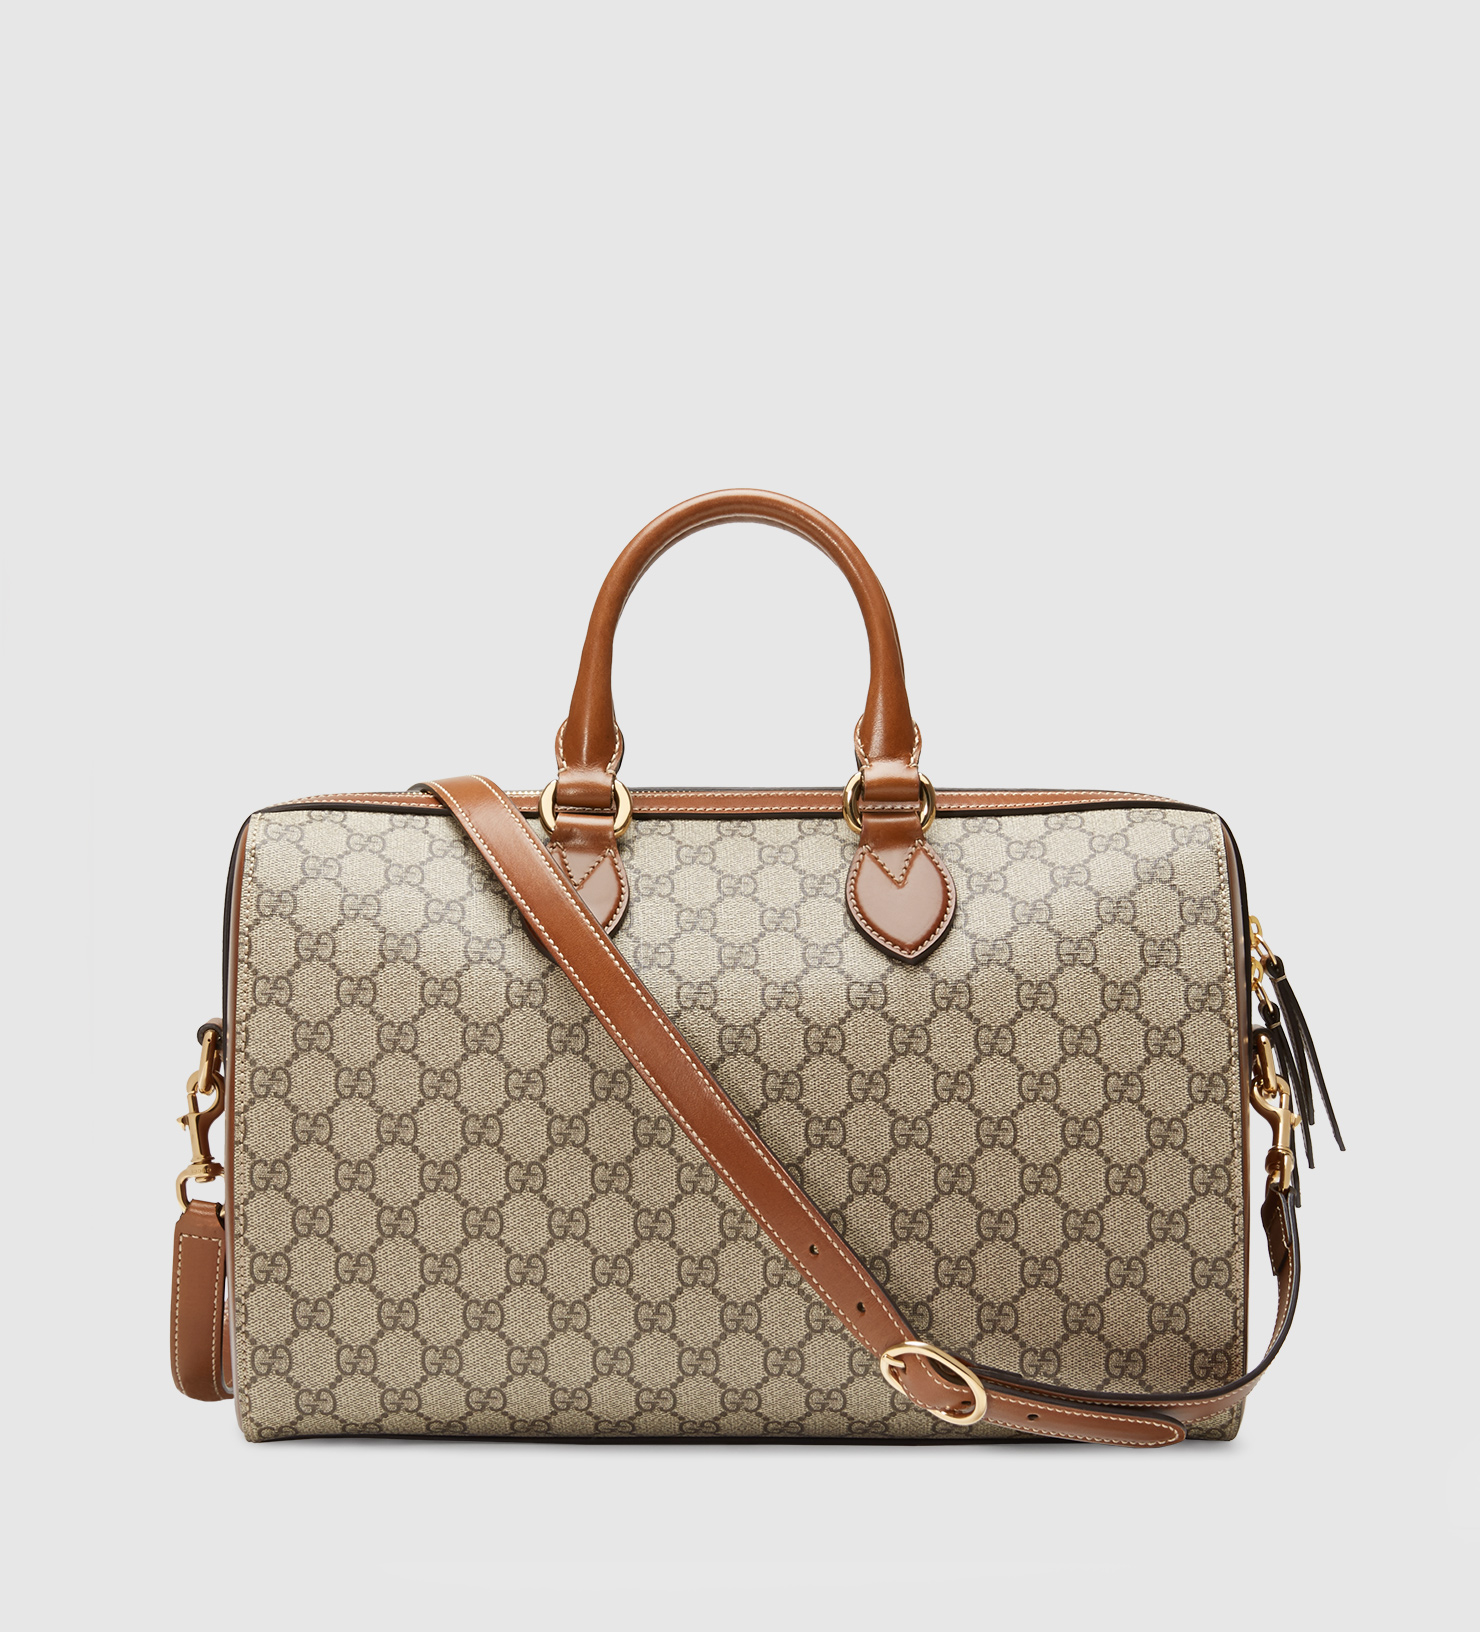 5ac0bbaf7 Gucci Gg Supreme Top Handle Bag in Gray - Lyst